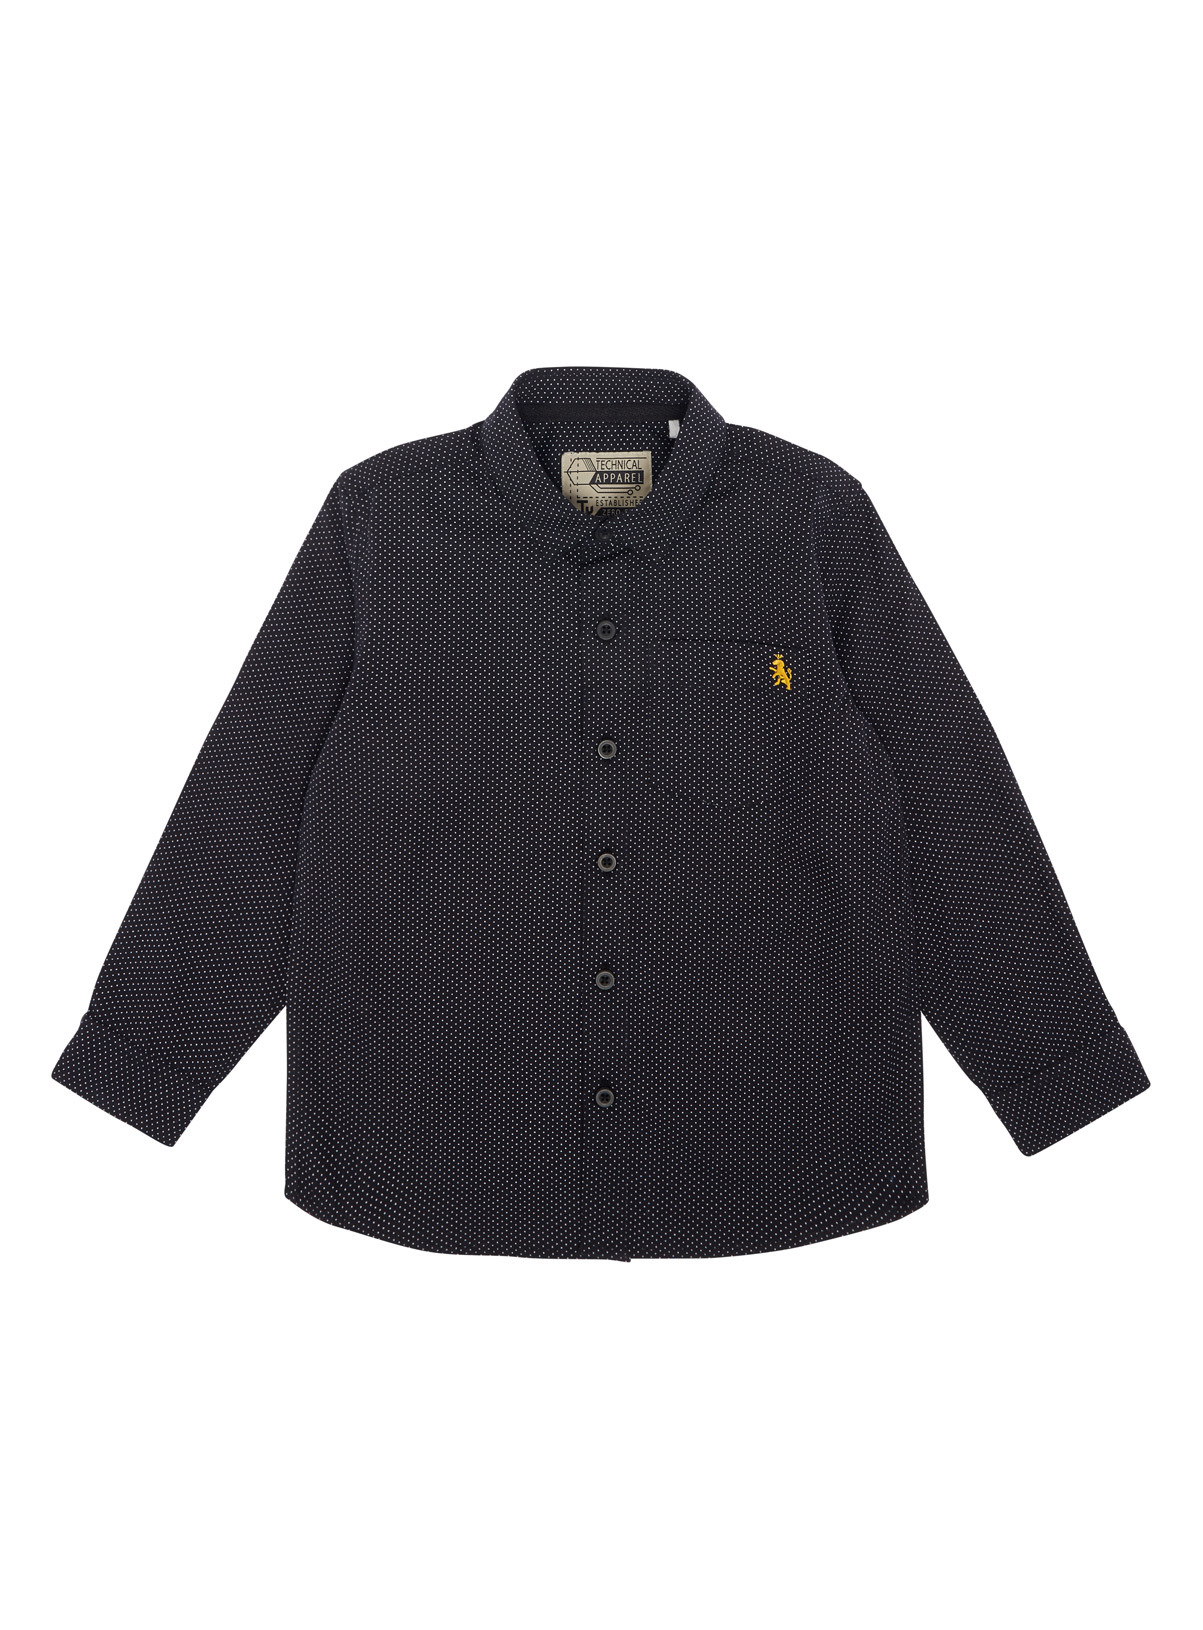 All Boy's Clothing Boys Black Spot Shirt (3-12 years) | Tu clothing